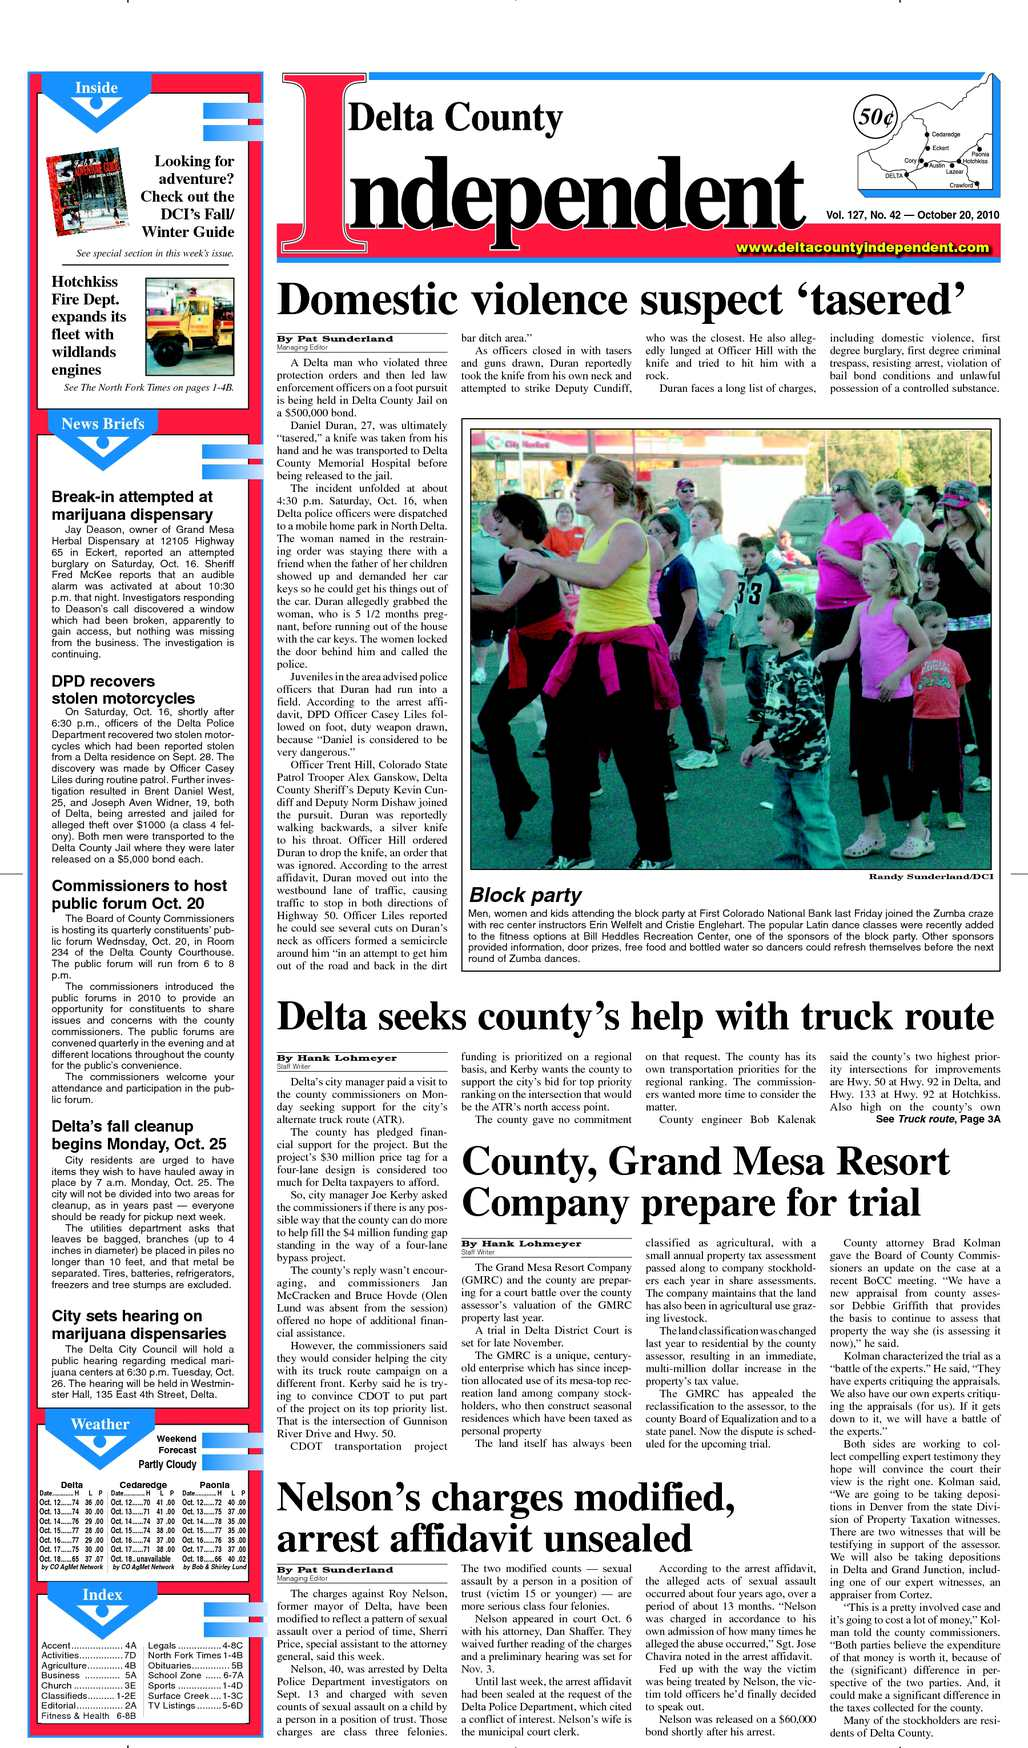 Calaméo - Delta County Independent Issue 42, Oct  20, 2010